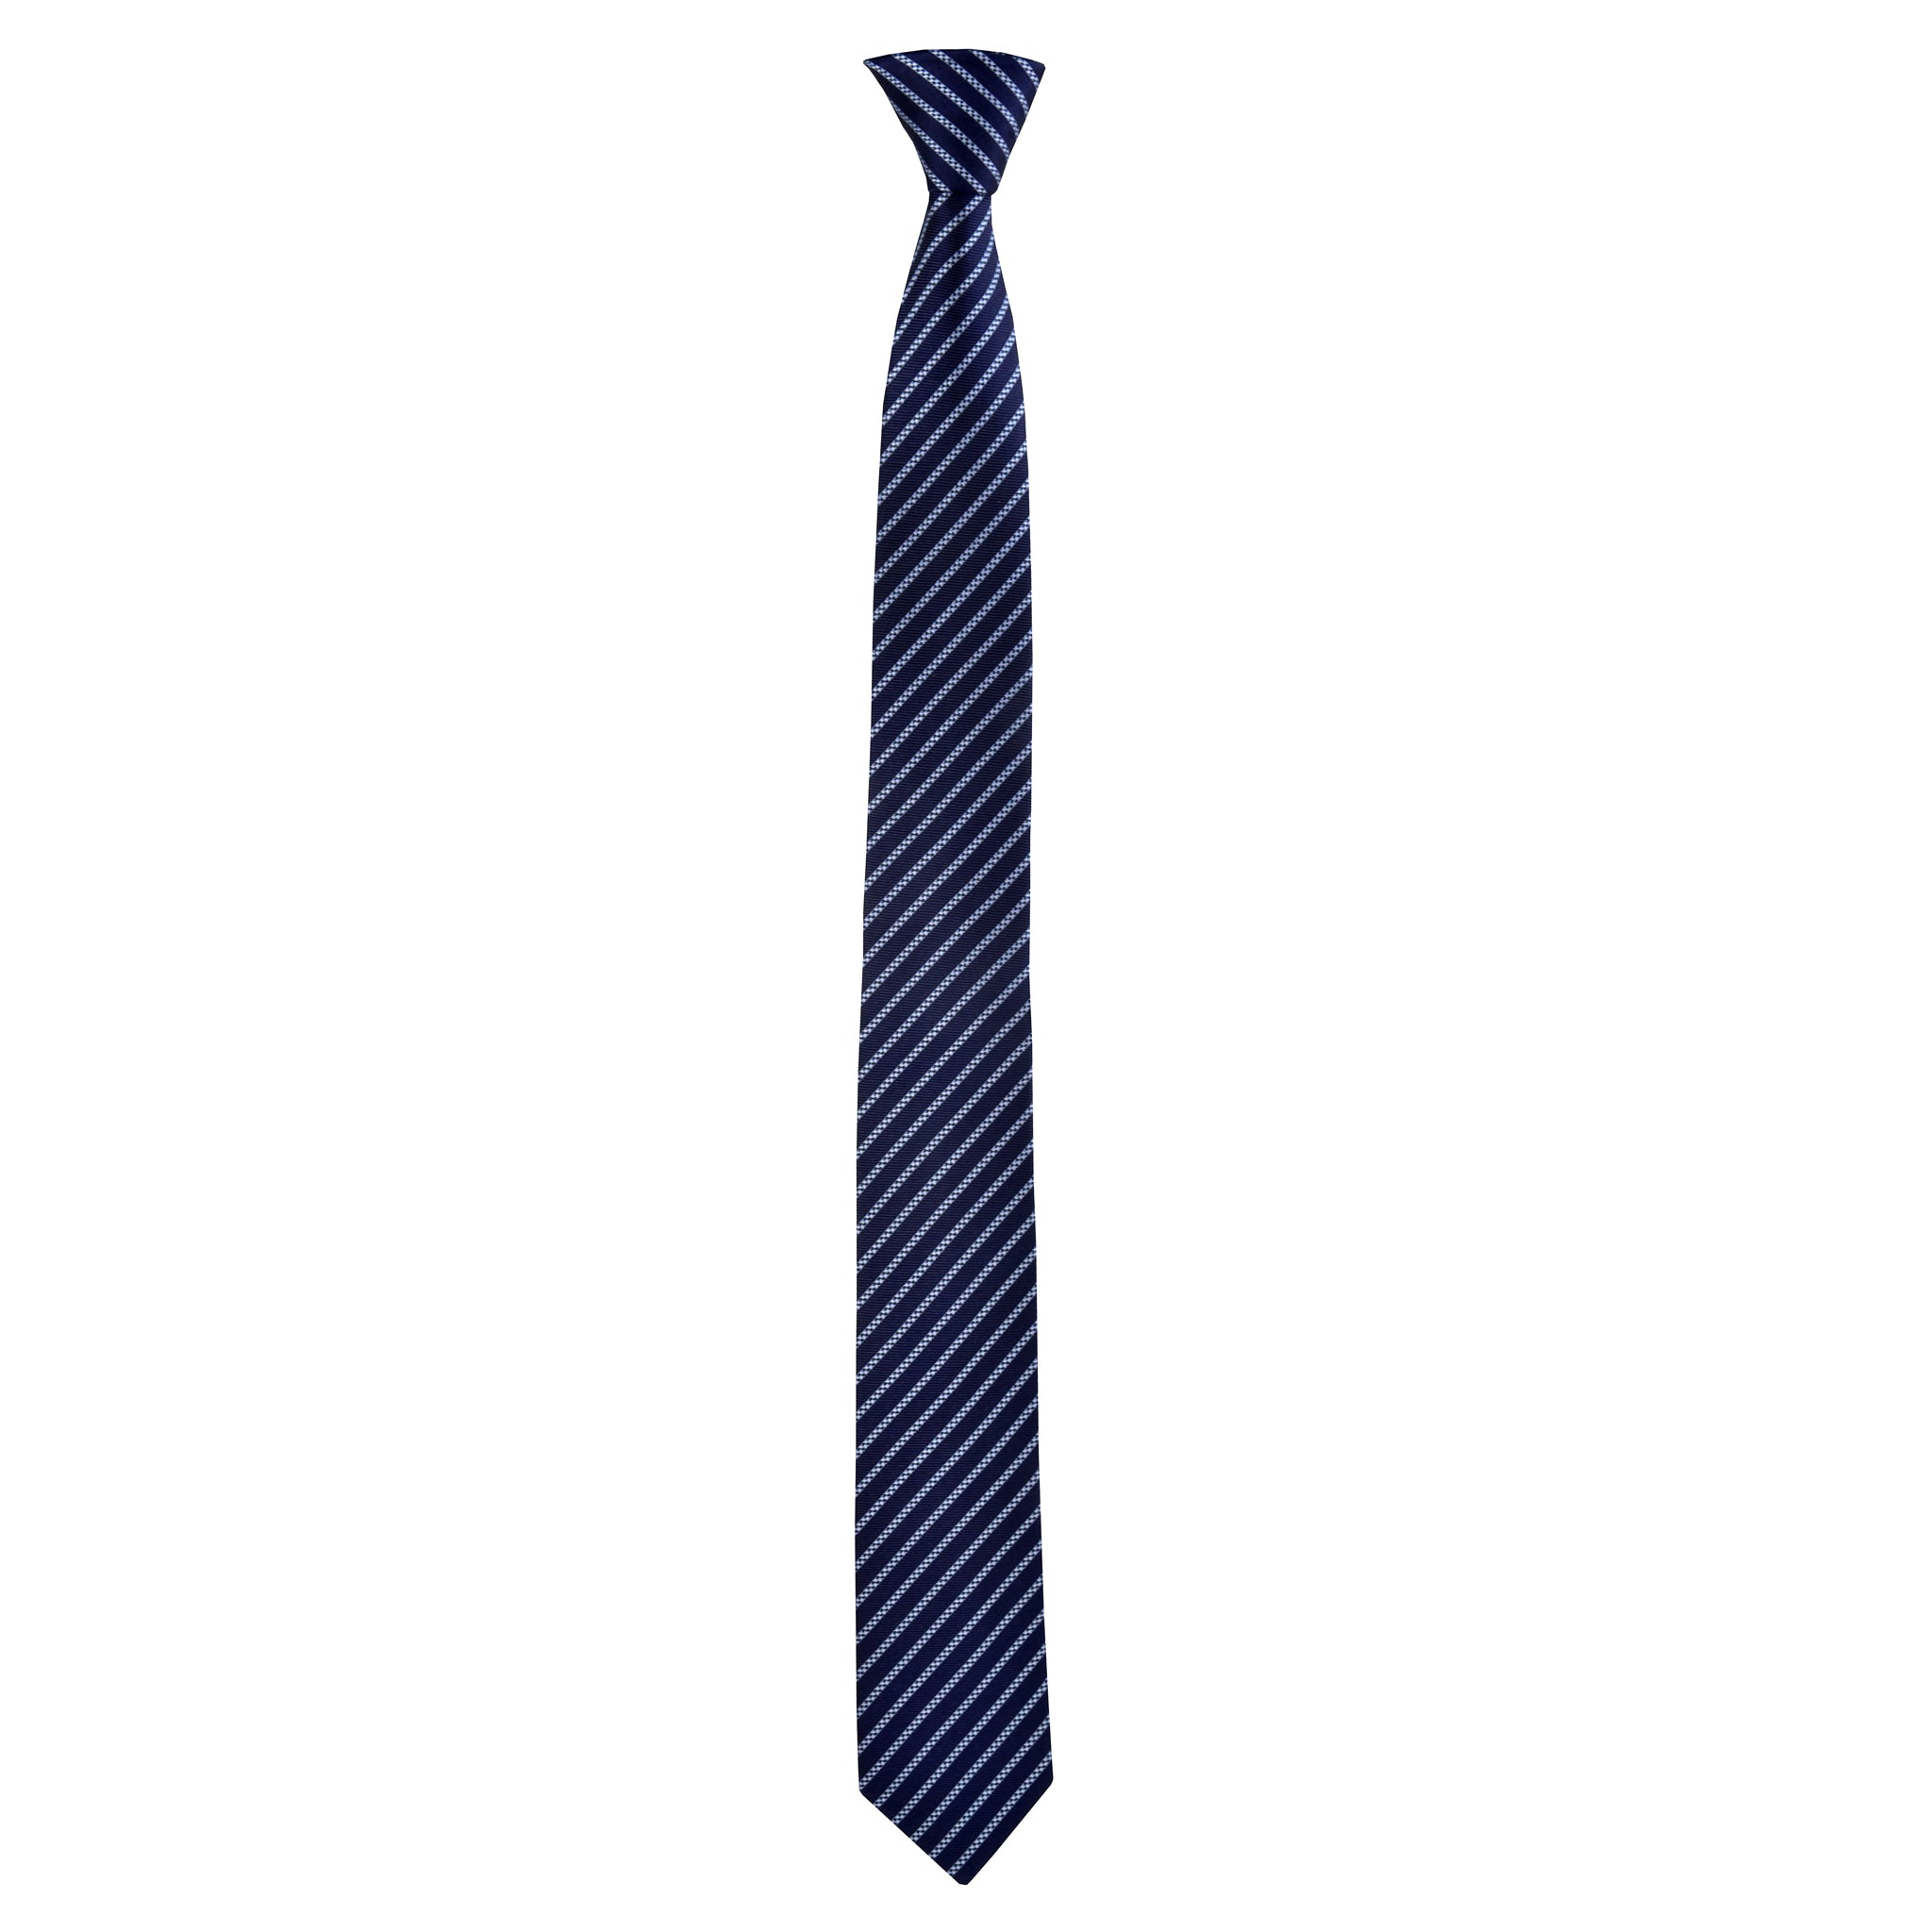 Skinny Lined Haig Tie in Blue - Giorgio Mandelli® Official Site | GIORGIO MANDELLI Made in Italy